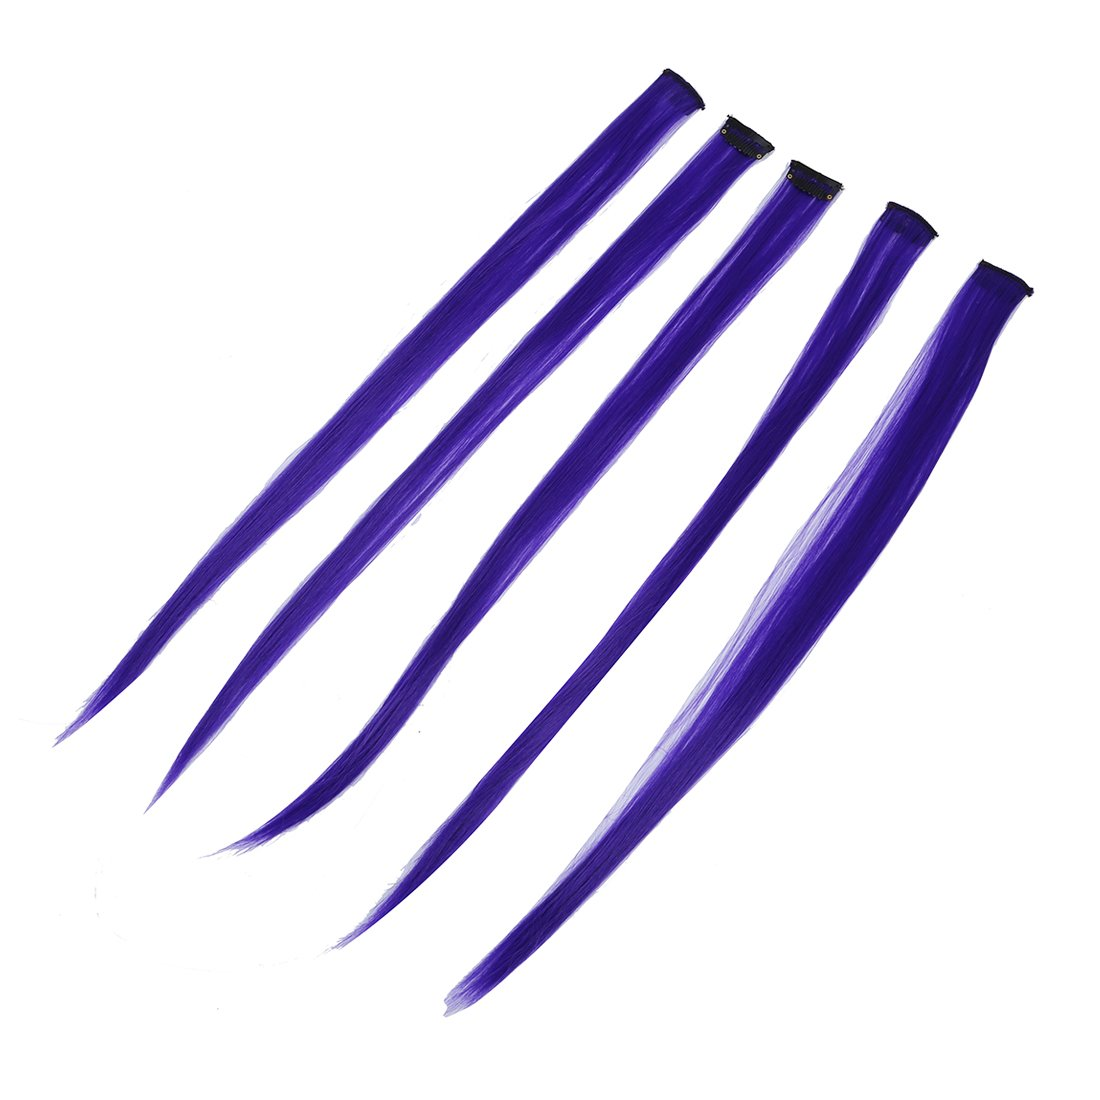 5 Pcs Colored Clip-on In Hair Extensions Straight Wigs Hairpieces 23.6 Inch Long - Blue Violet SODIAL